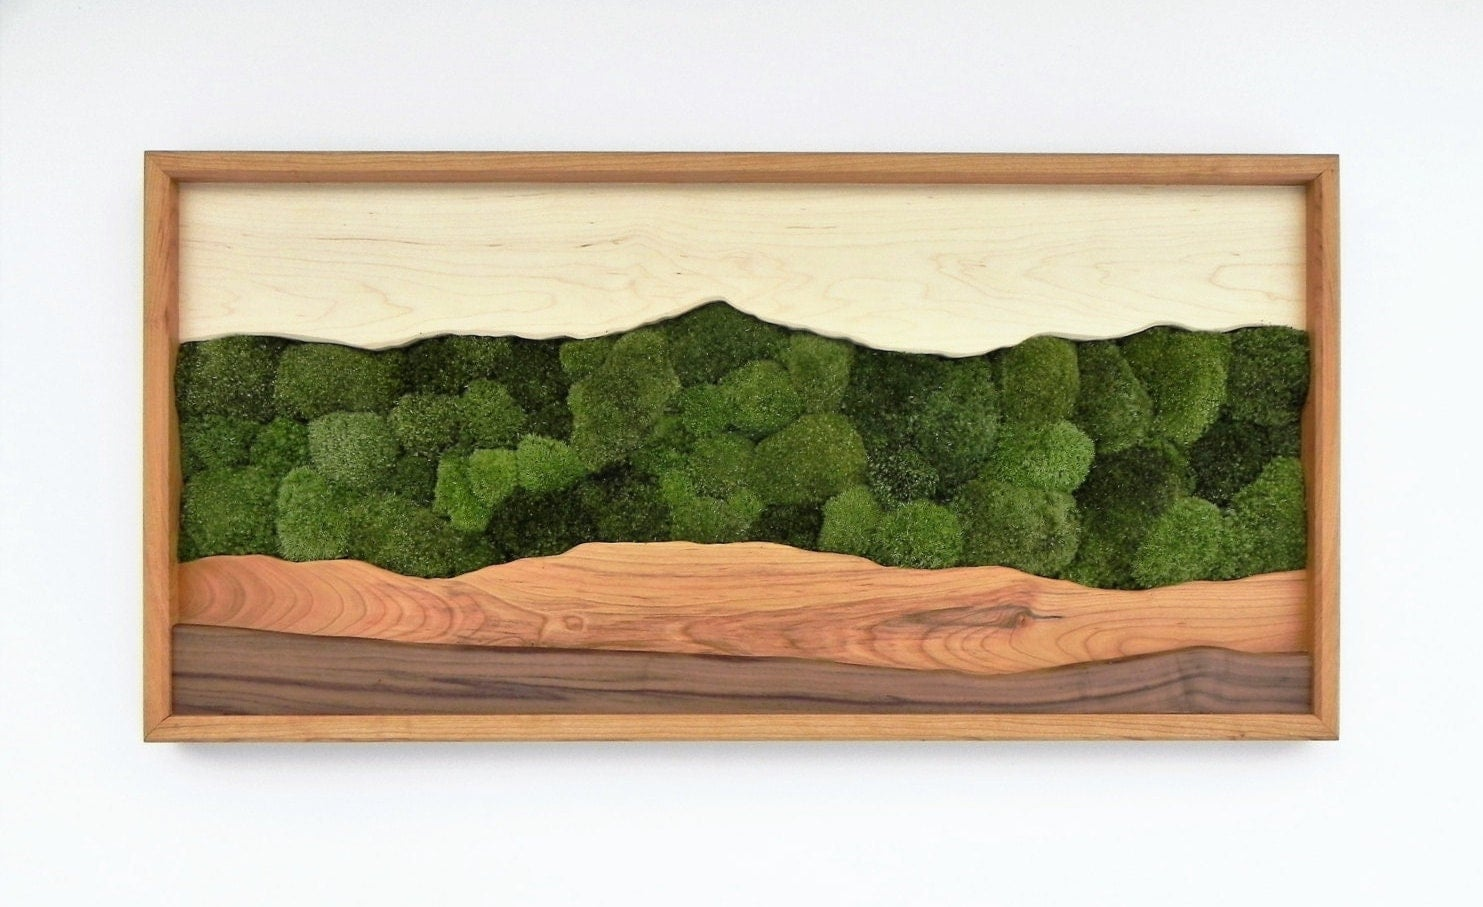 Charmant Green Mountain Moss Wall Art /Sugar Maple, Cherry, Walnut, Preserved Moss/